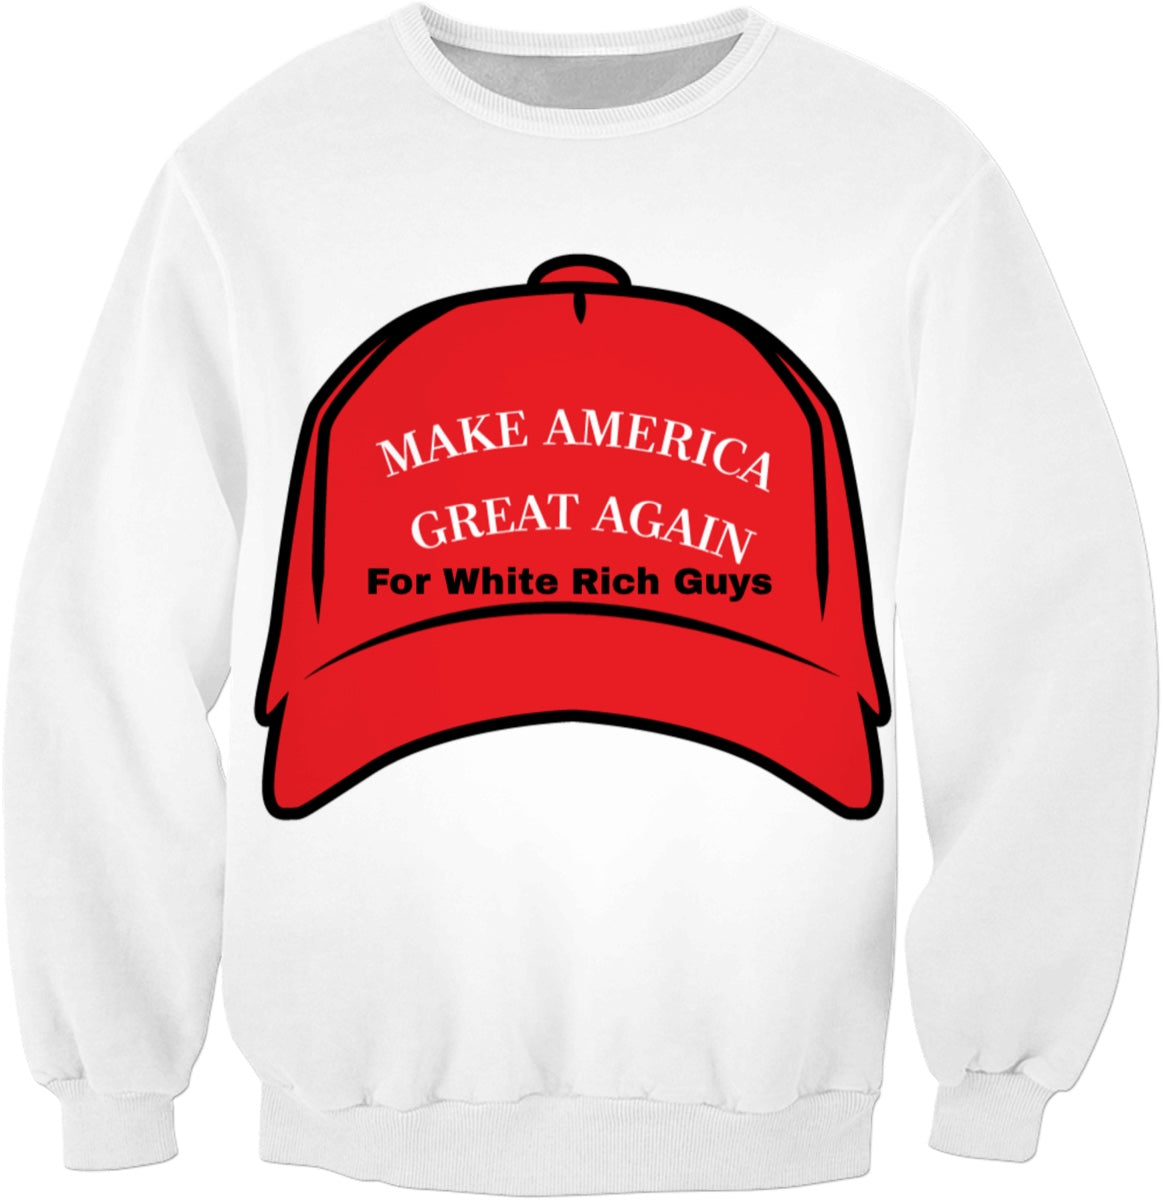 Make America Great Again For White Rich Guys Sweatshirt